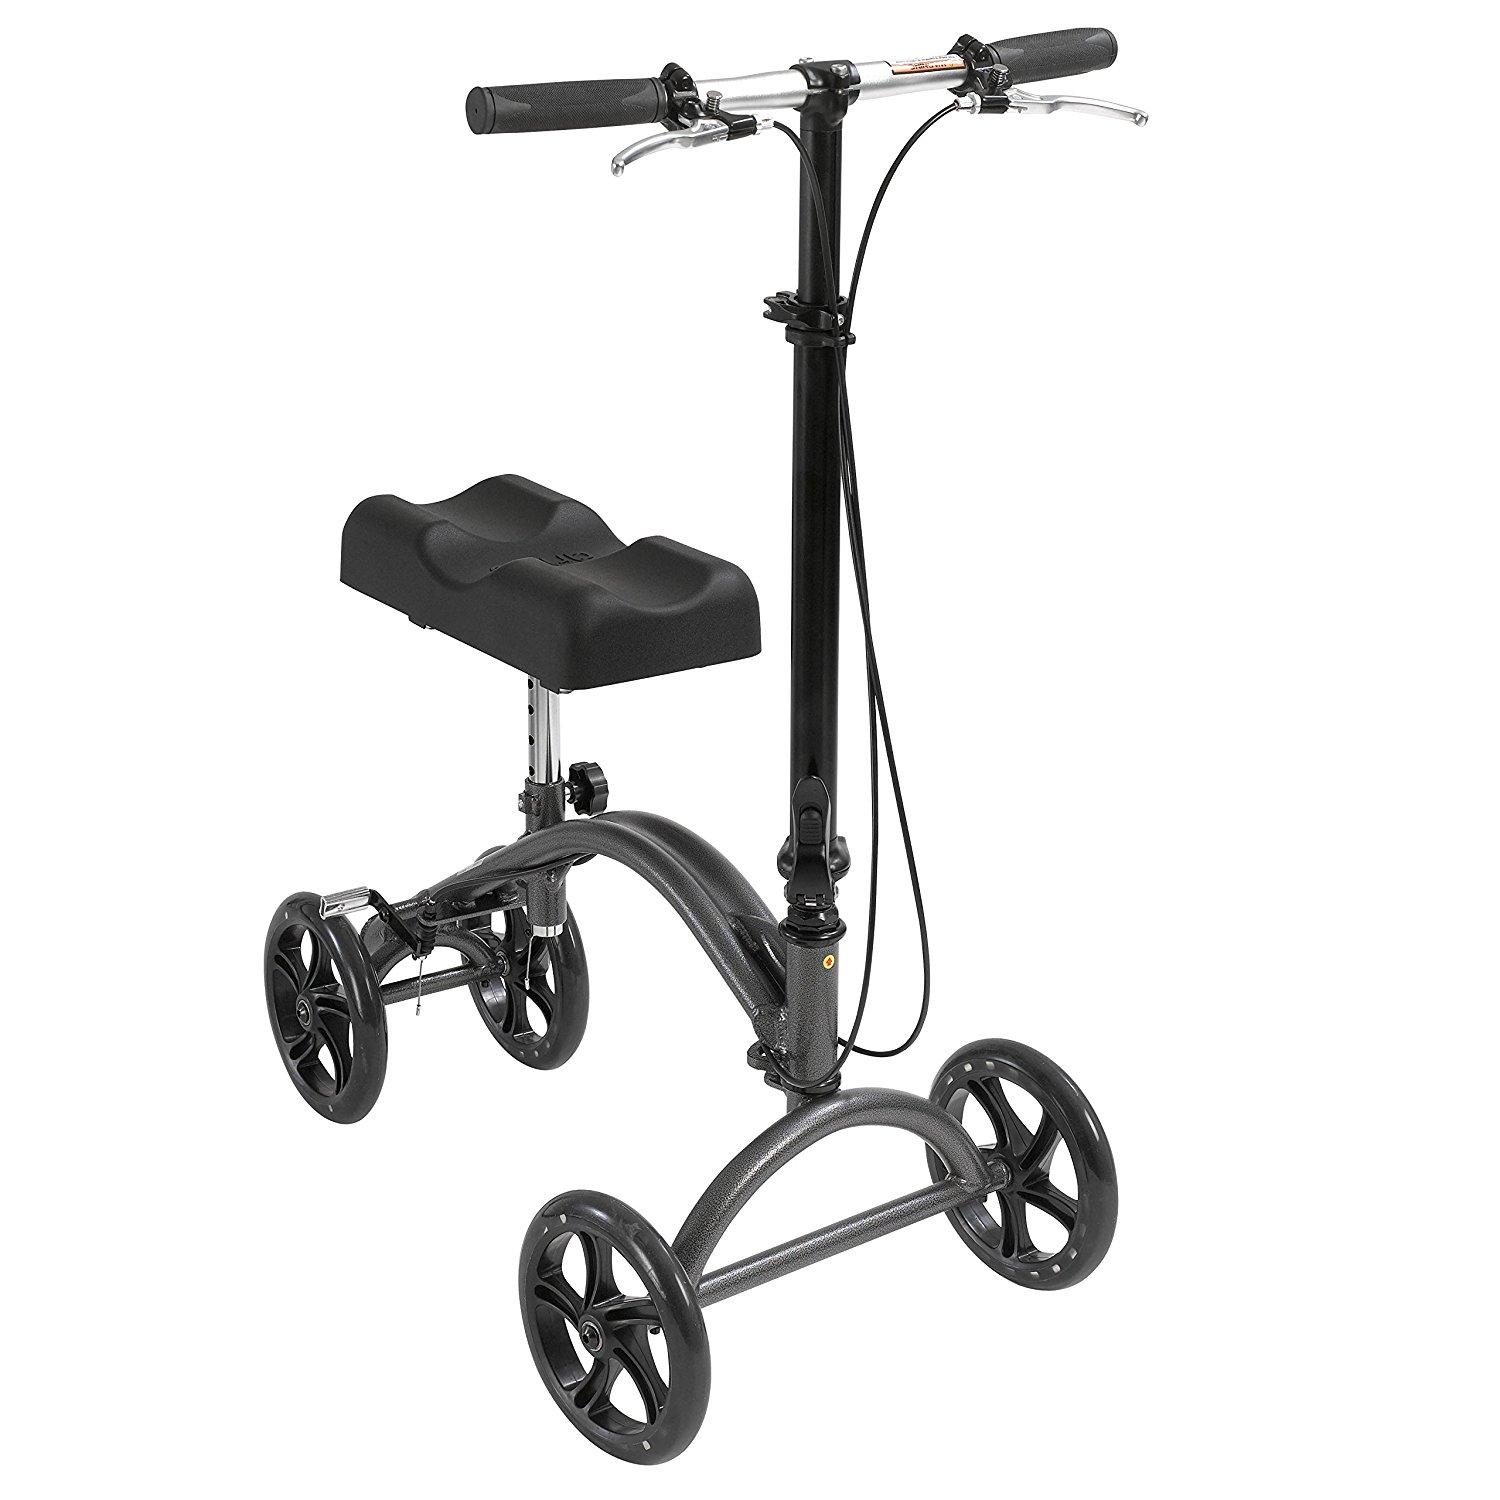 Walker, Knee Walker, Knee Scooter